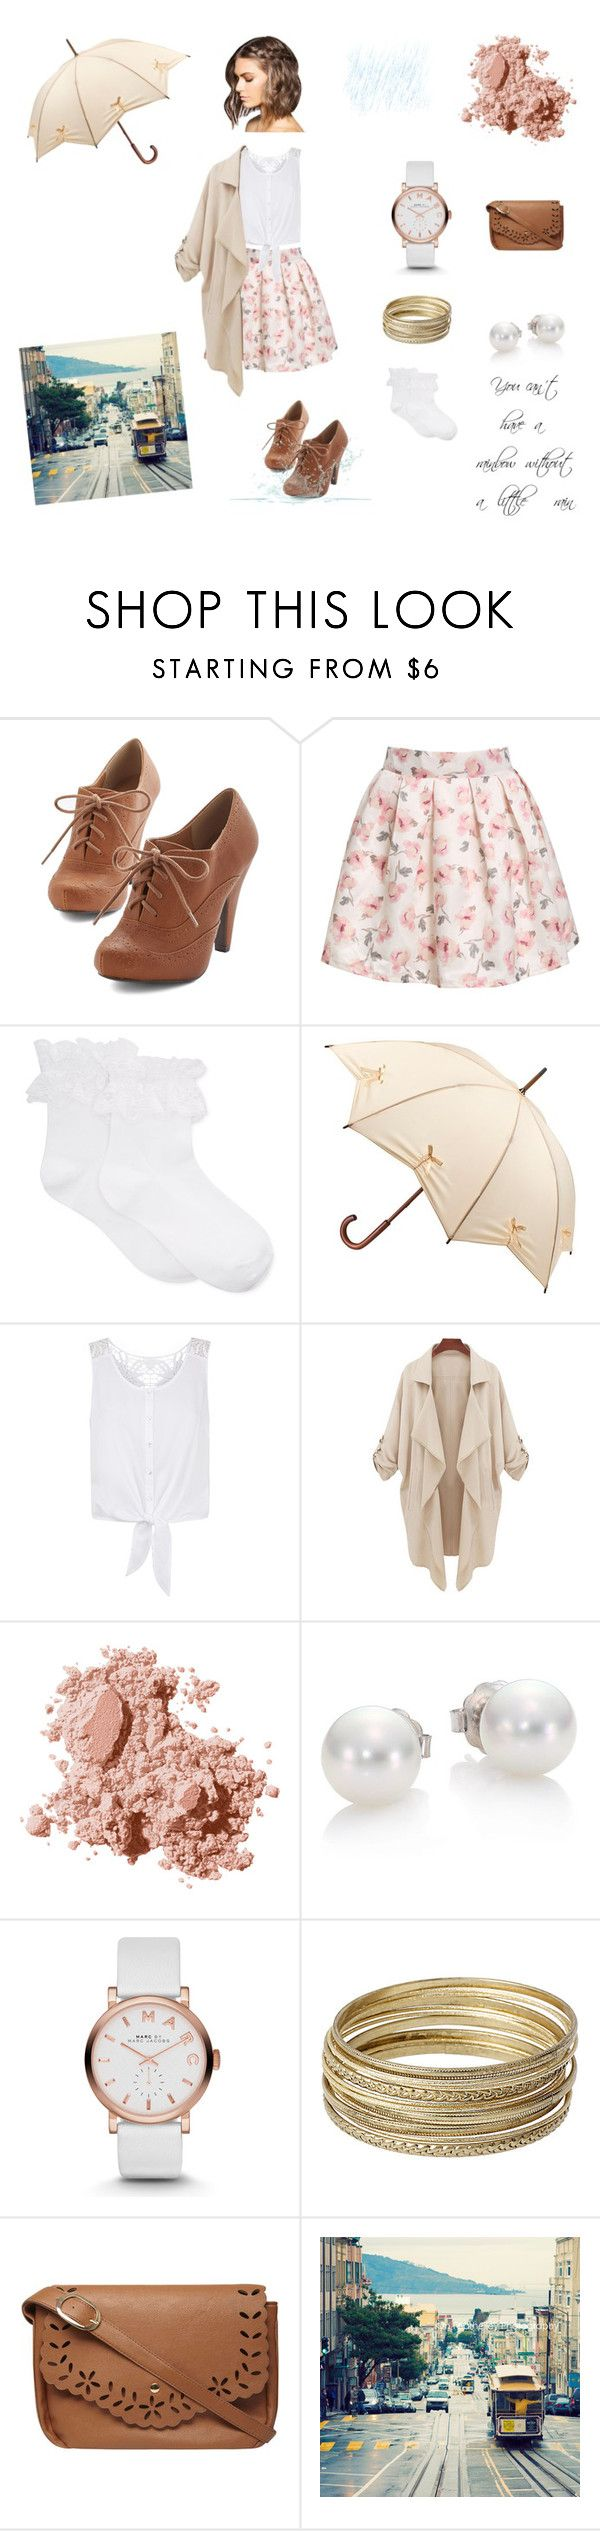 """Cute outfit for a rainy summer day"" by canthelpit ❤ liked on Polyvore featuring Hue, Fulton, Monsoon, Bobbi Brown Cosmetics, Mikimoto, Marc by Marc Jacobs, Steve Madden and Dorothy Perkins"